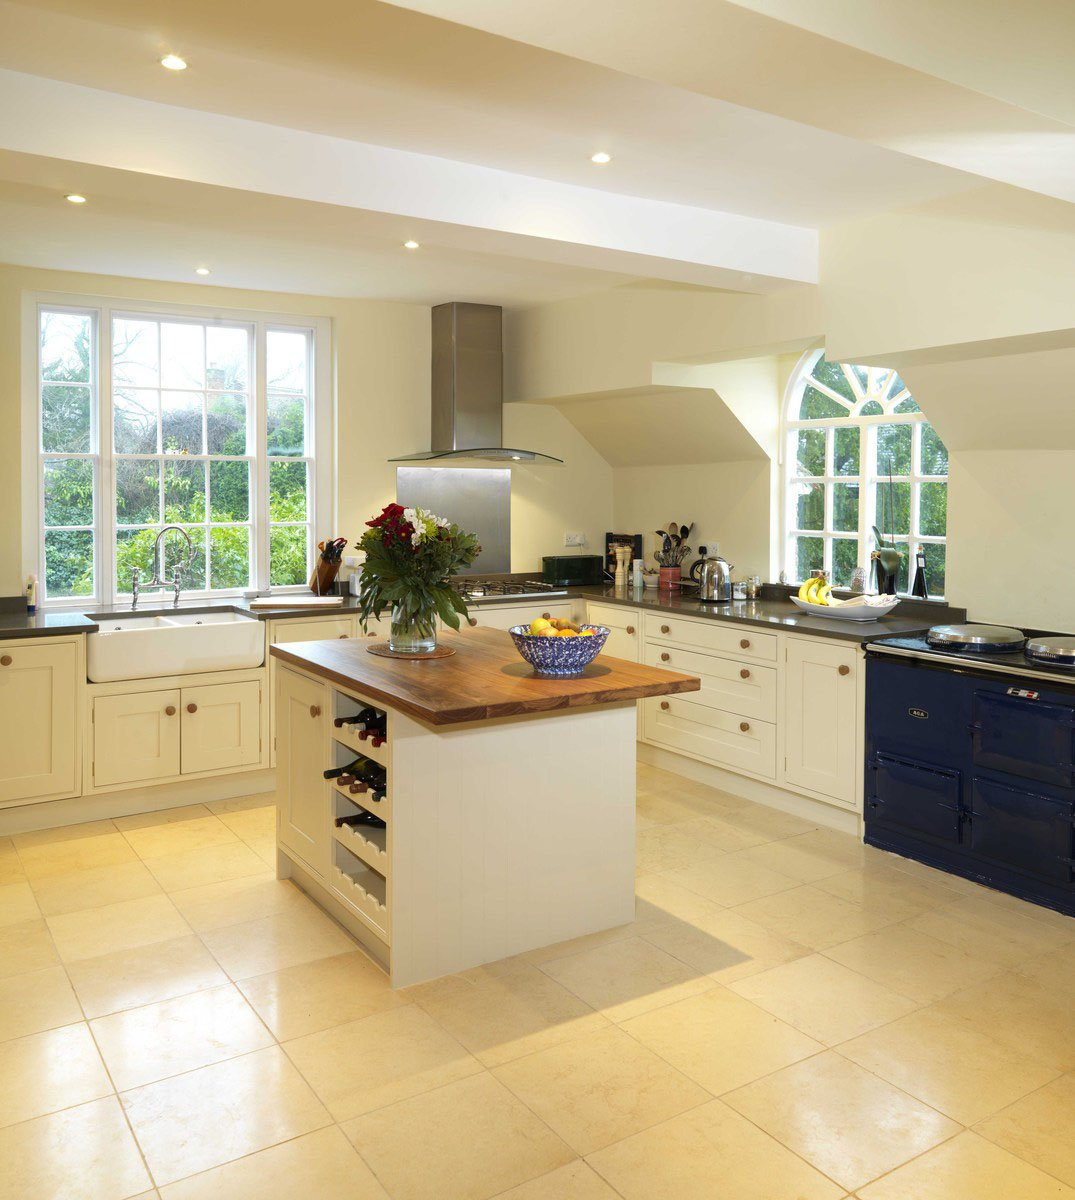 windsor bespoke fitted kitchens home decorators collection locations trend home design